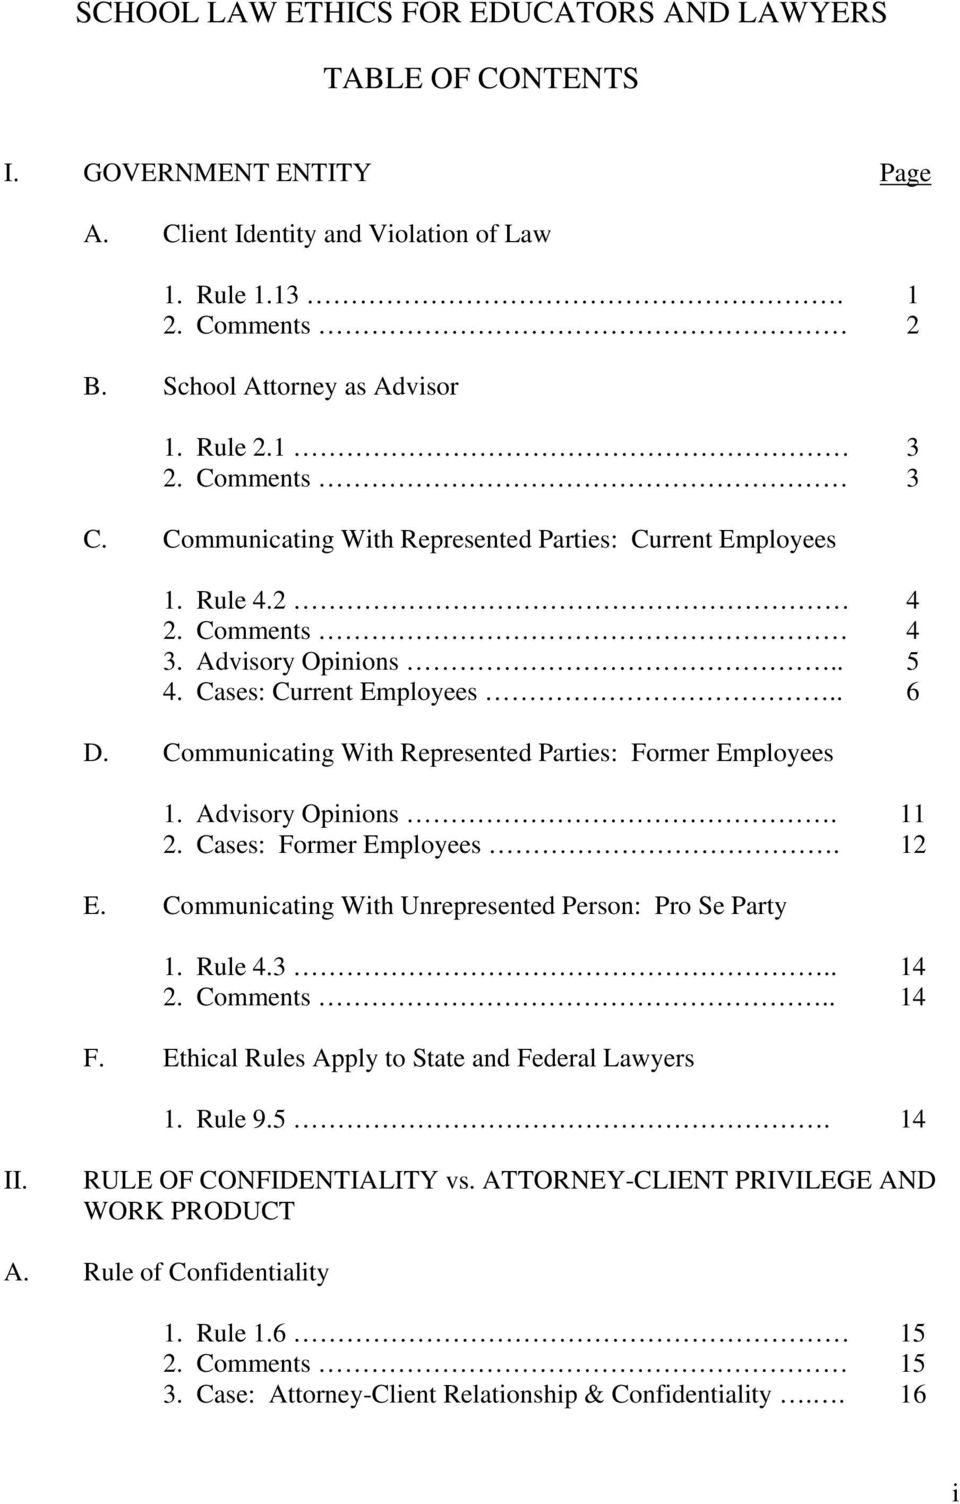 Communicating With Represented Parties: Former Employees 1. Advisory Opinions. 11 2. Cases: Former Employees. 12 E. Communicating With Unrepresented Person: Pro Se Party 1. Rule 4.3.. 14 2. Comments.